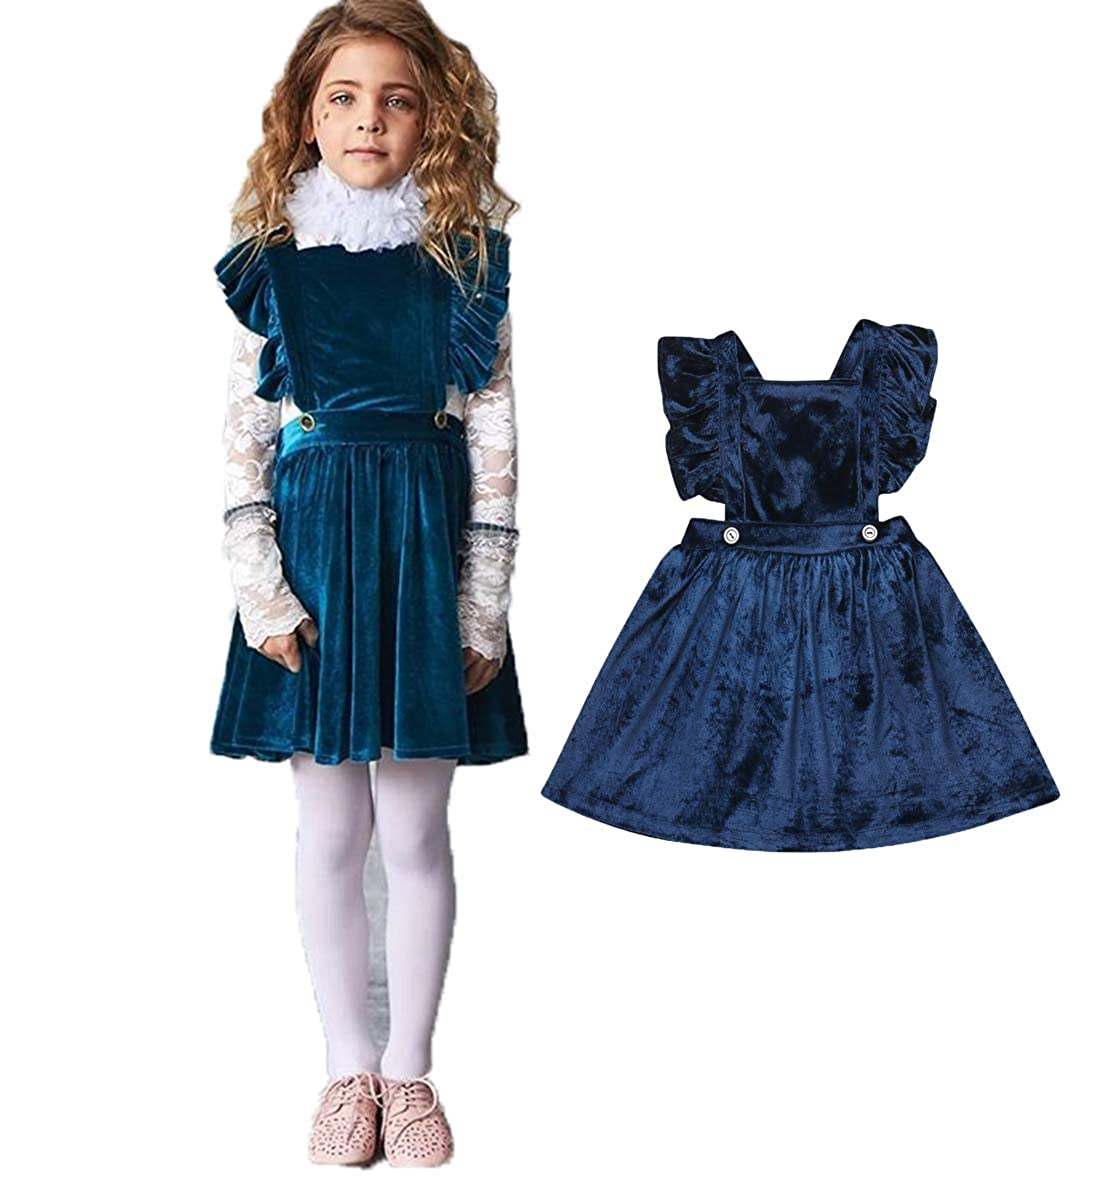 ddf32ce35a Amazon.com  YT couple Infant Girl One Piece Corduroy Pinafore Skirt Solid  Color Blue Suspender Skirt Sleeveless Backless Overall Skirt  Clothing